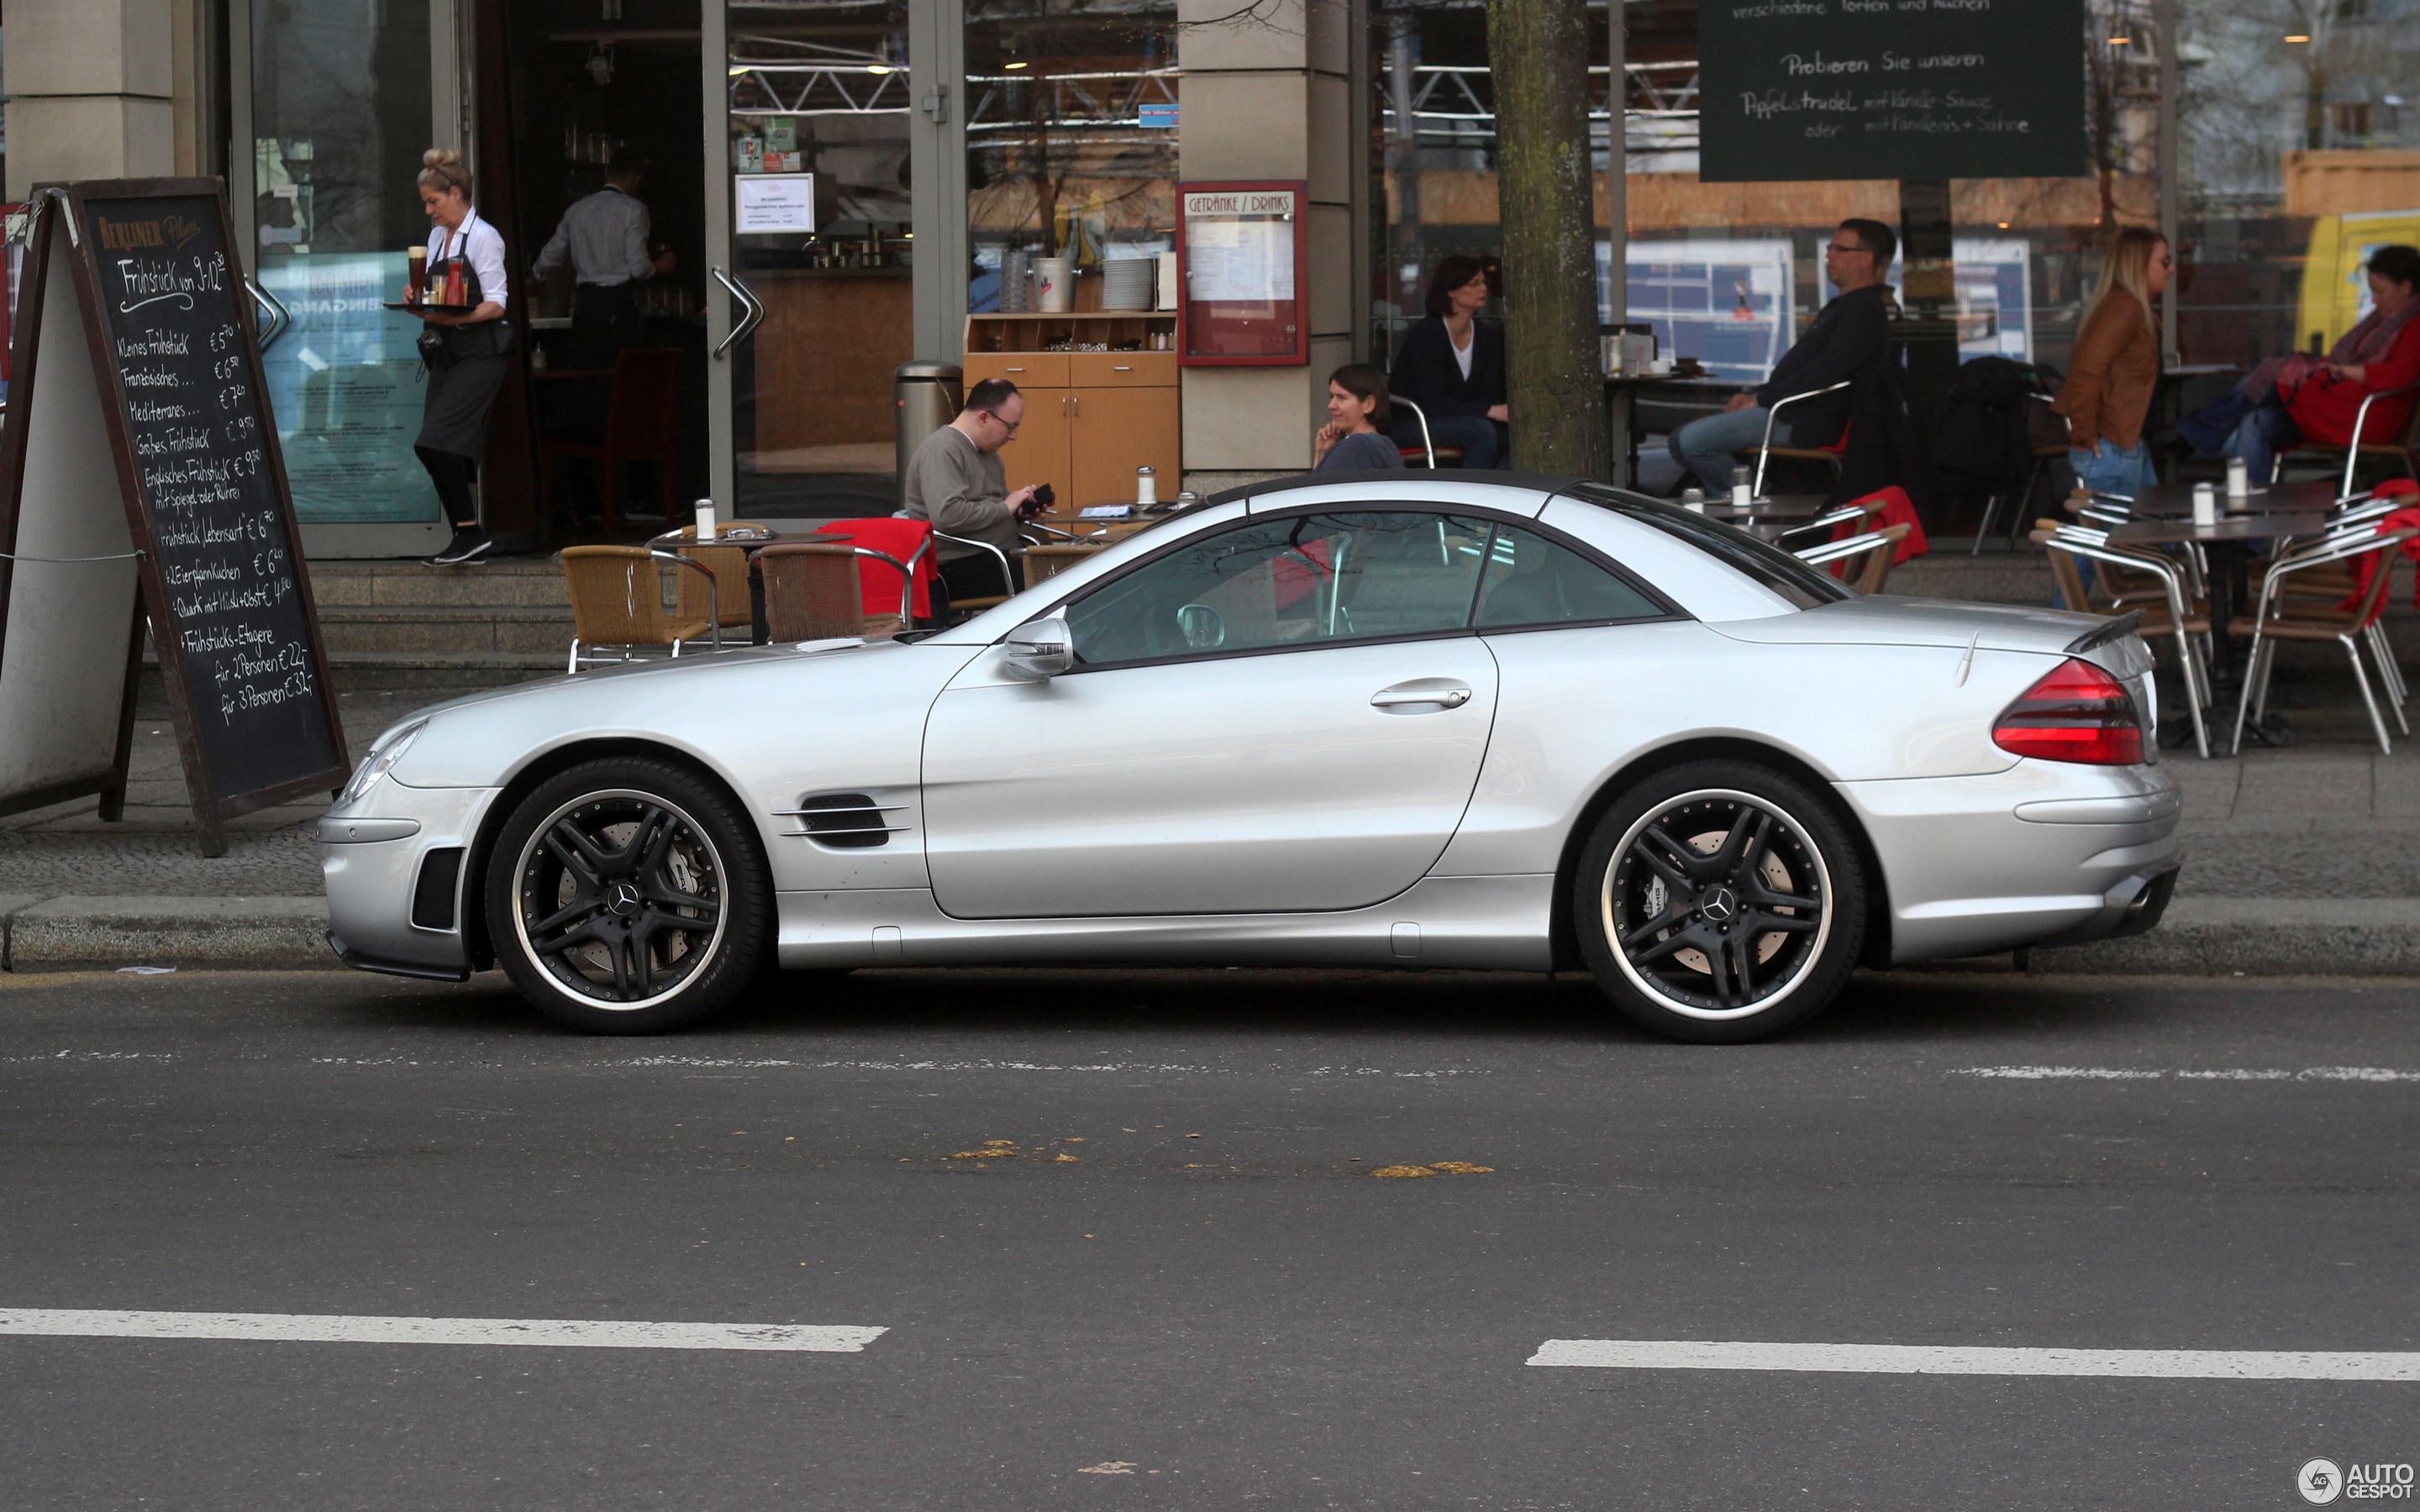 Mercedes-Benz SL 55 AMG R230 - 31 March 2017 - Autogespot